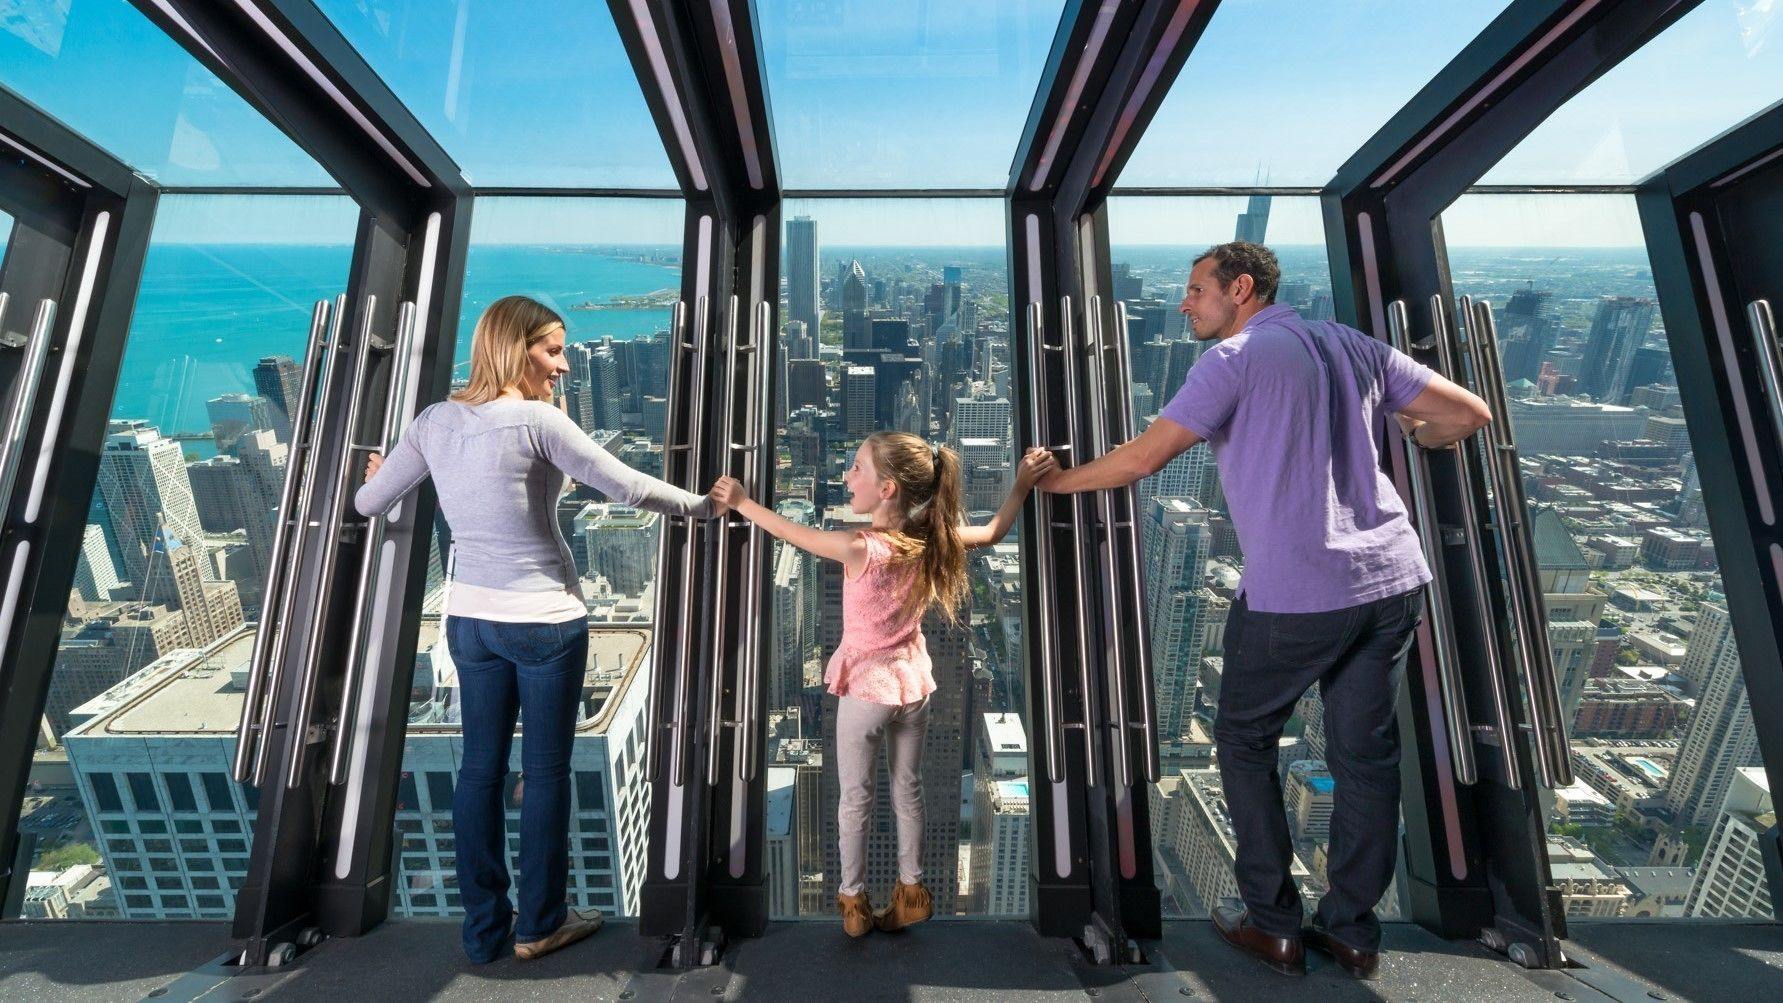 360 Chicago Observation Deck (formerly John Hancock Observatory)